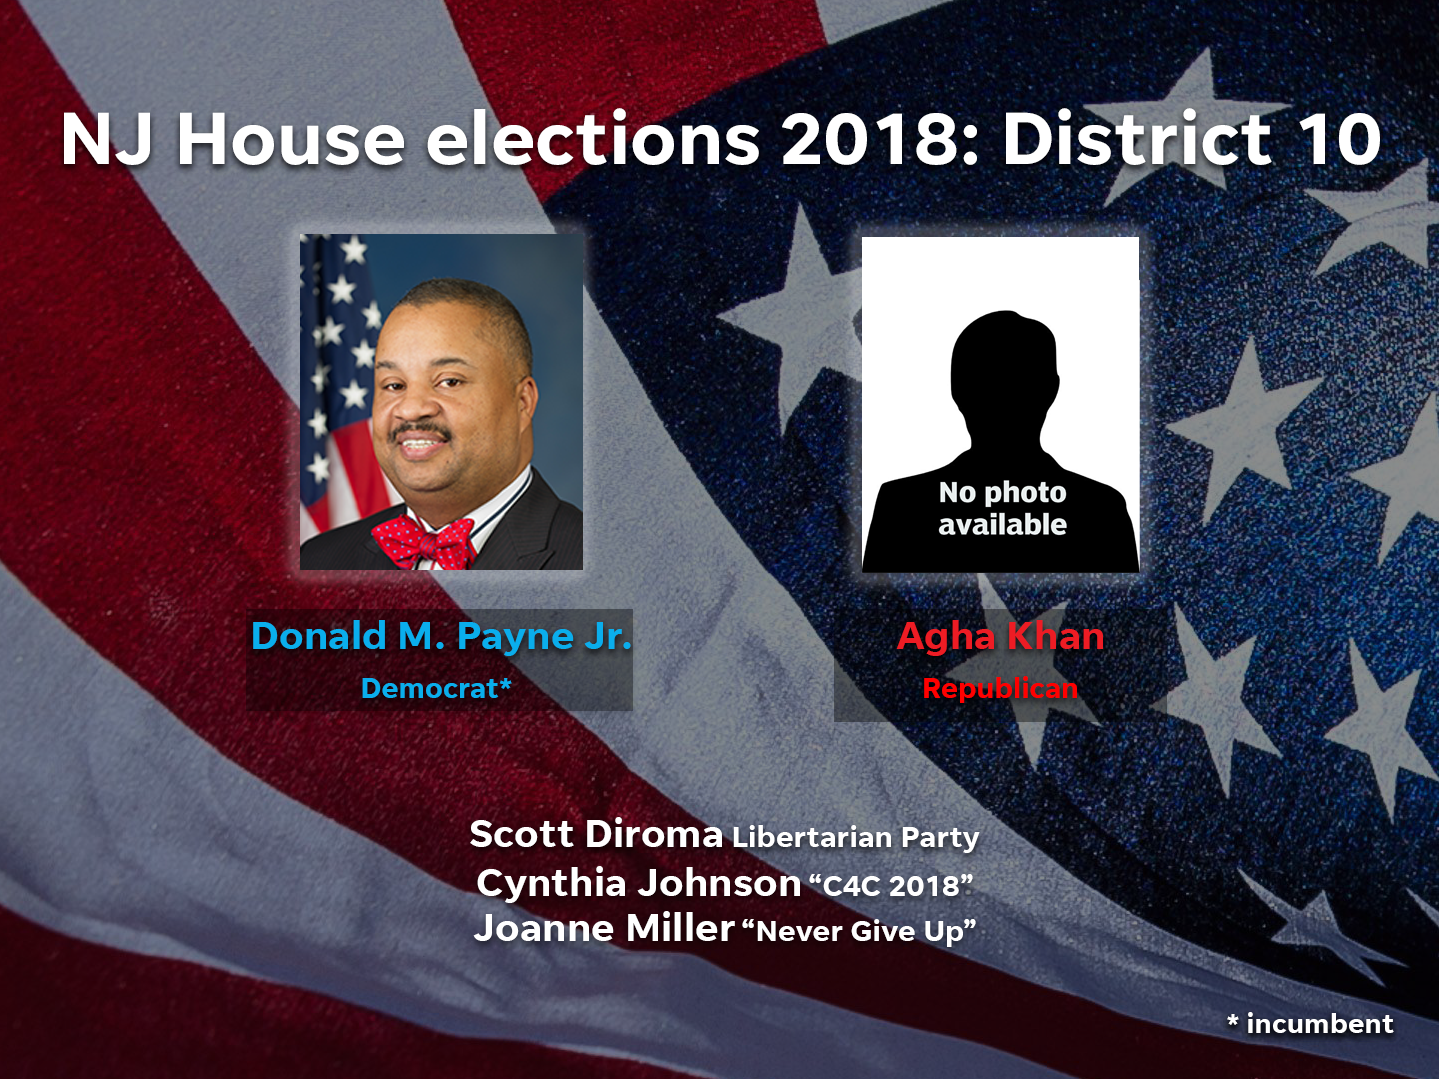 Donald M. Payne Jr. (D) and Agha Khan (R) are among the candidates running in District 10 in the 2018 NJ House elections.